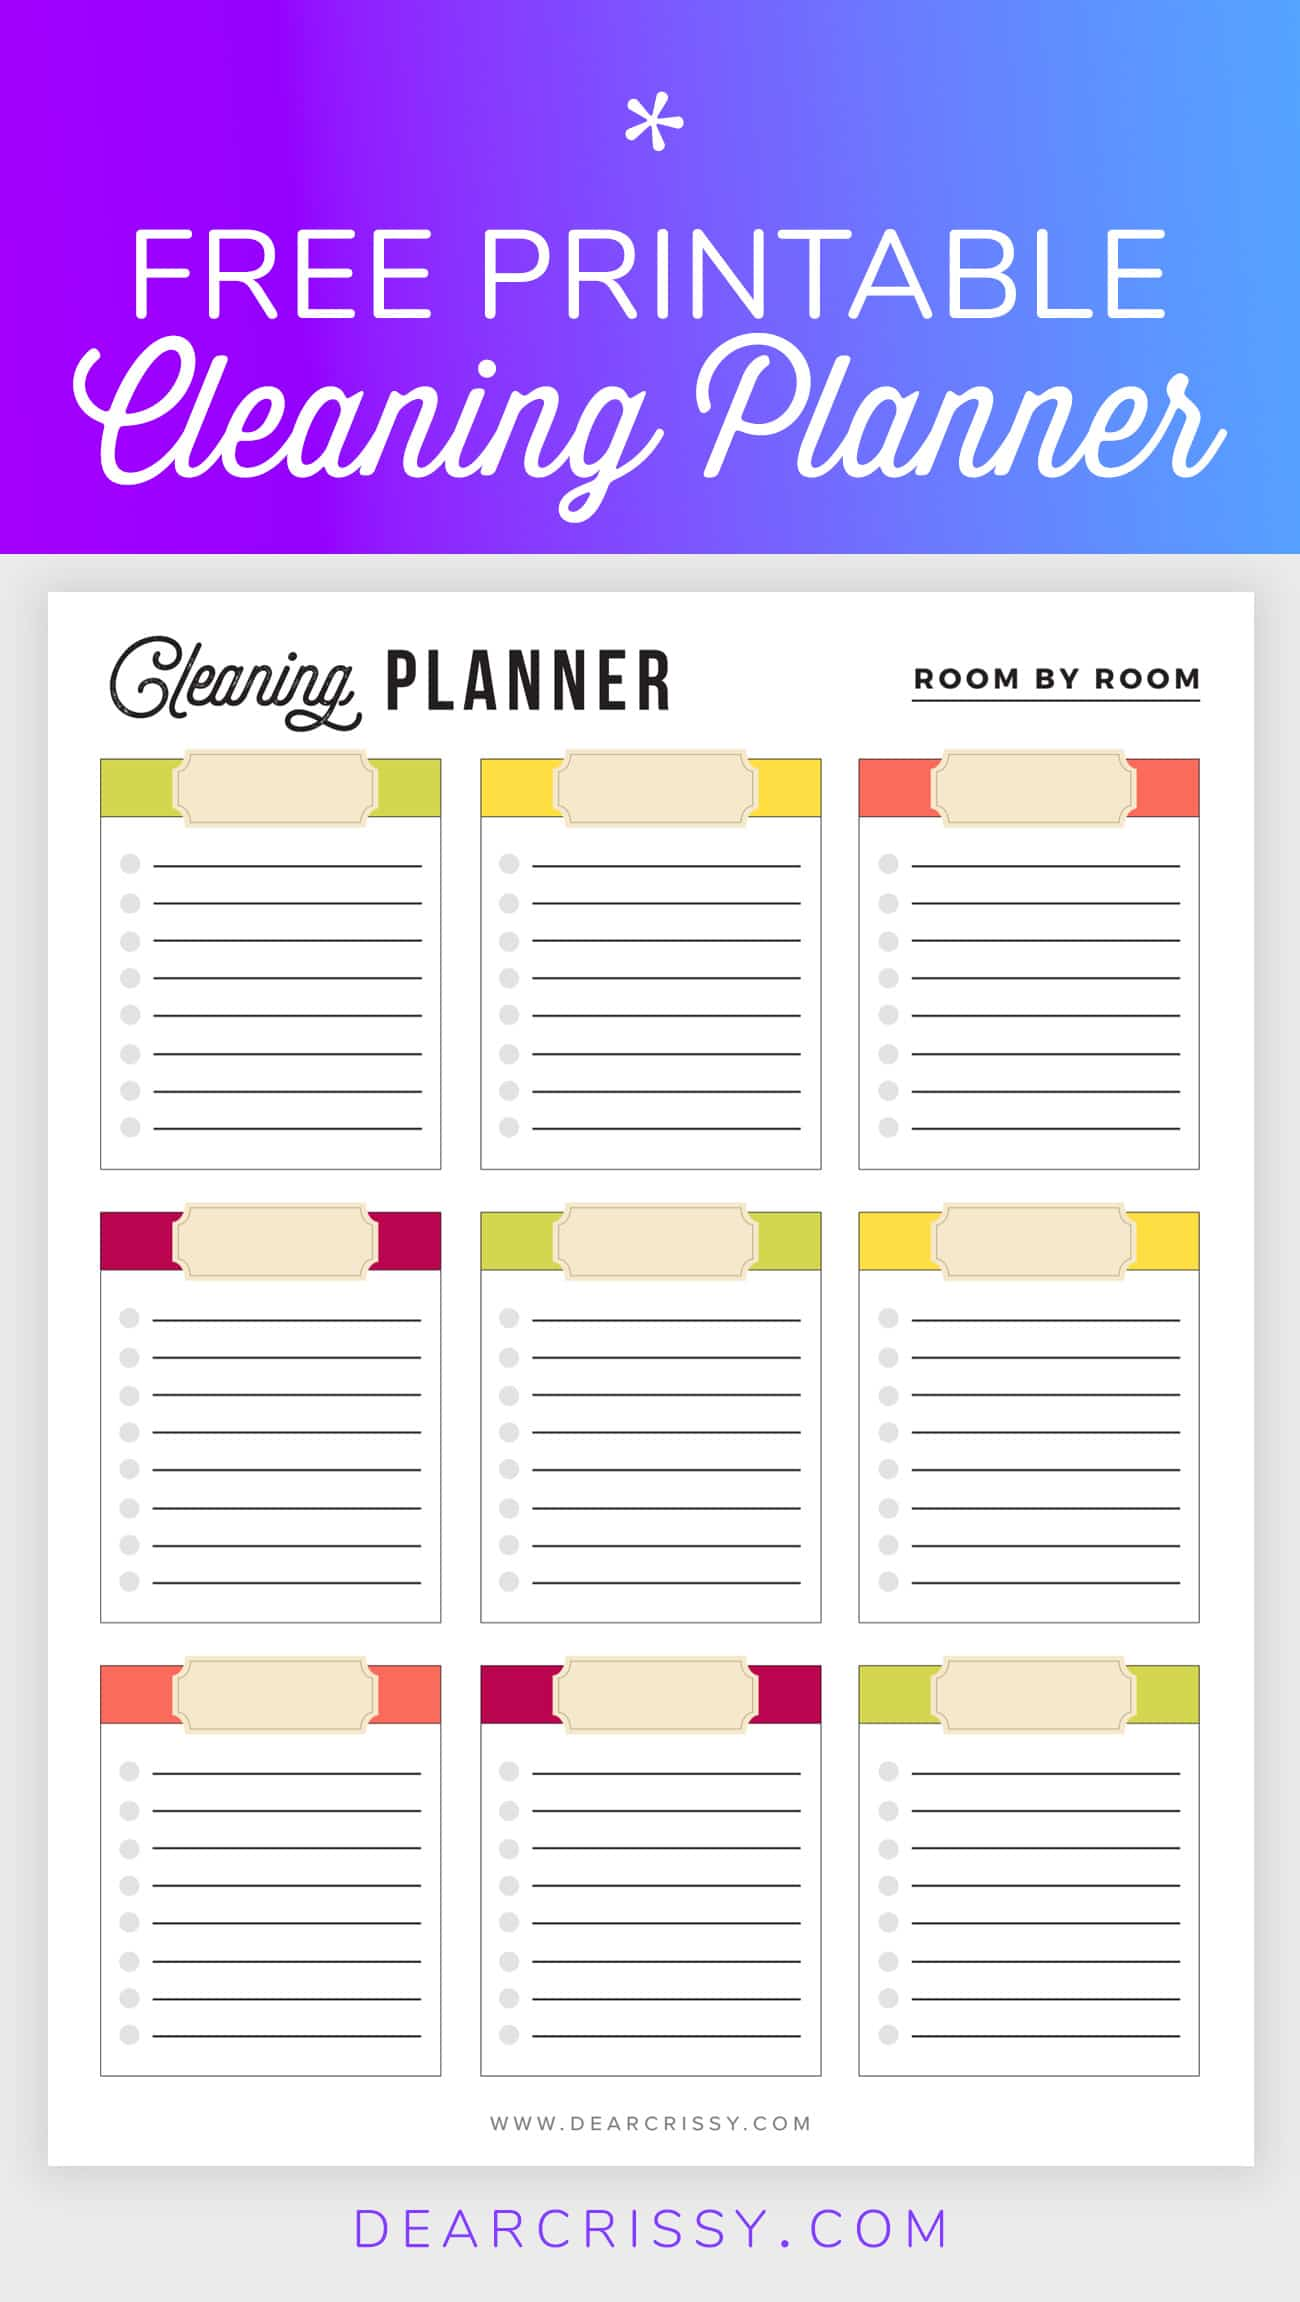 Free Printable Cleaning Planner - Cleaning Checklist - Cleaning Printable - Spring Cleaning #FreePrintable #Printable #Cleaning #Organization